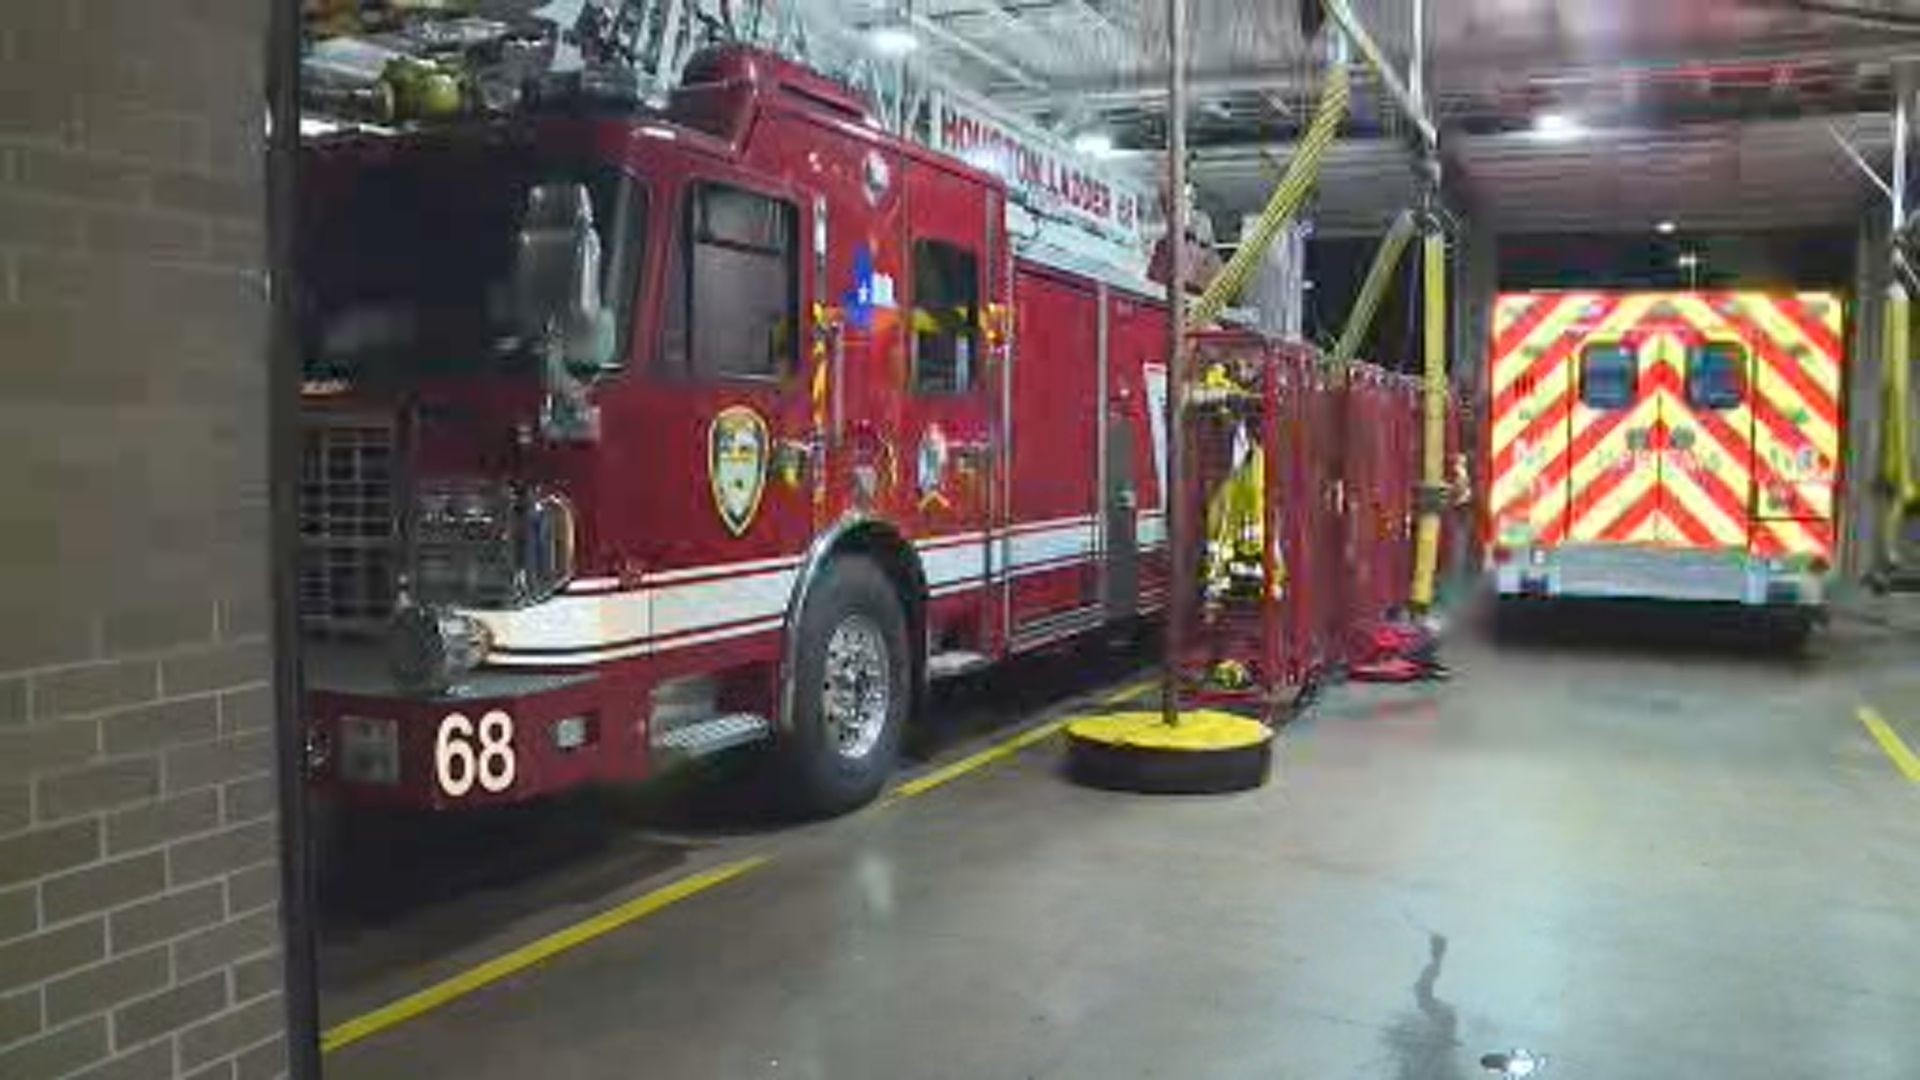 Hfd Trucks, Other Vehicles Out Of Service Due To Staffing inside Hfd Shift Calendar